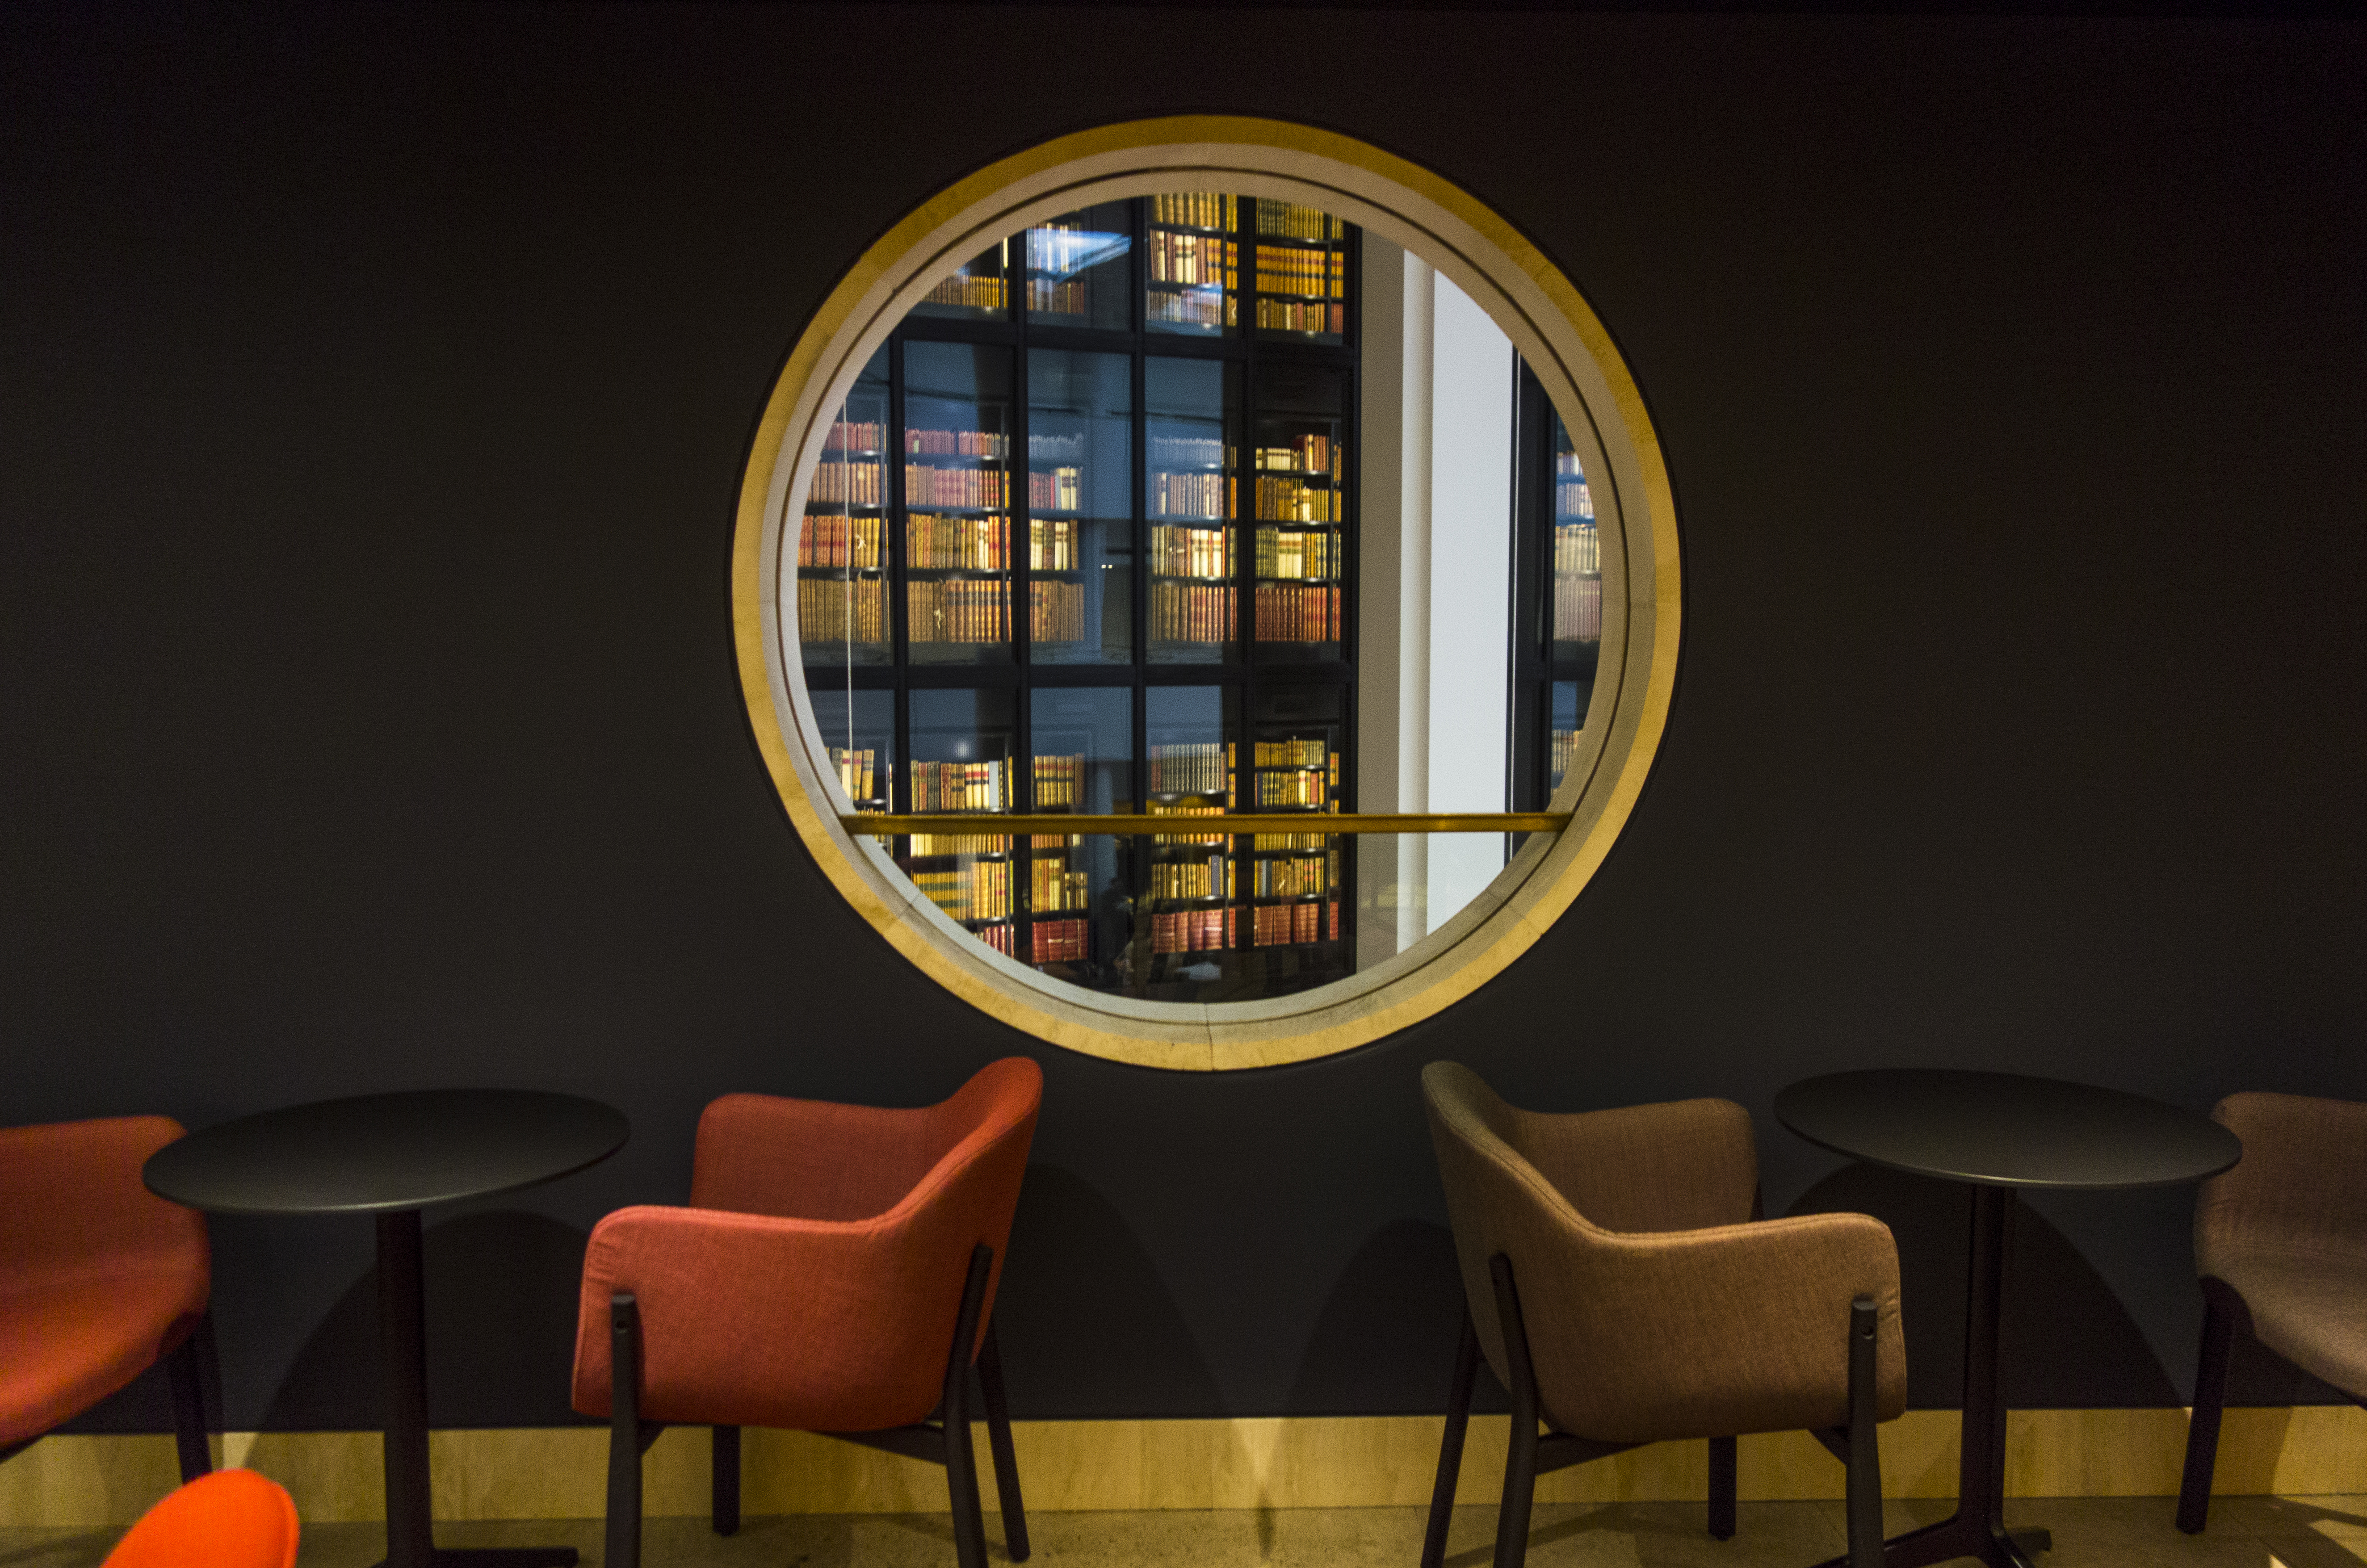 The Members' Bar at the British Library credit Tony Antoniou